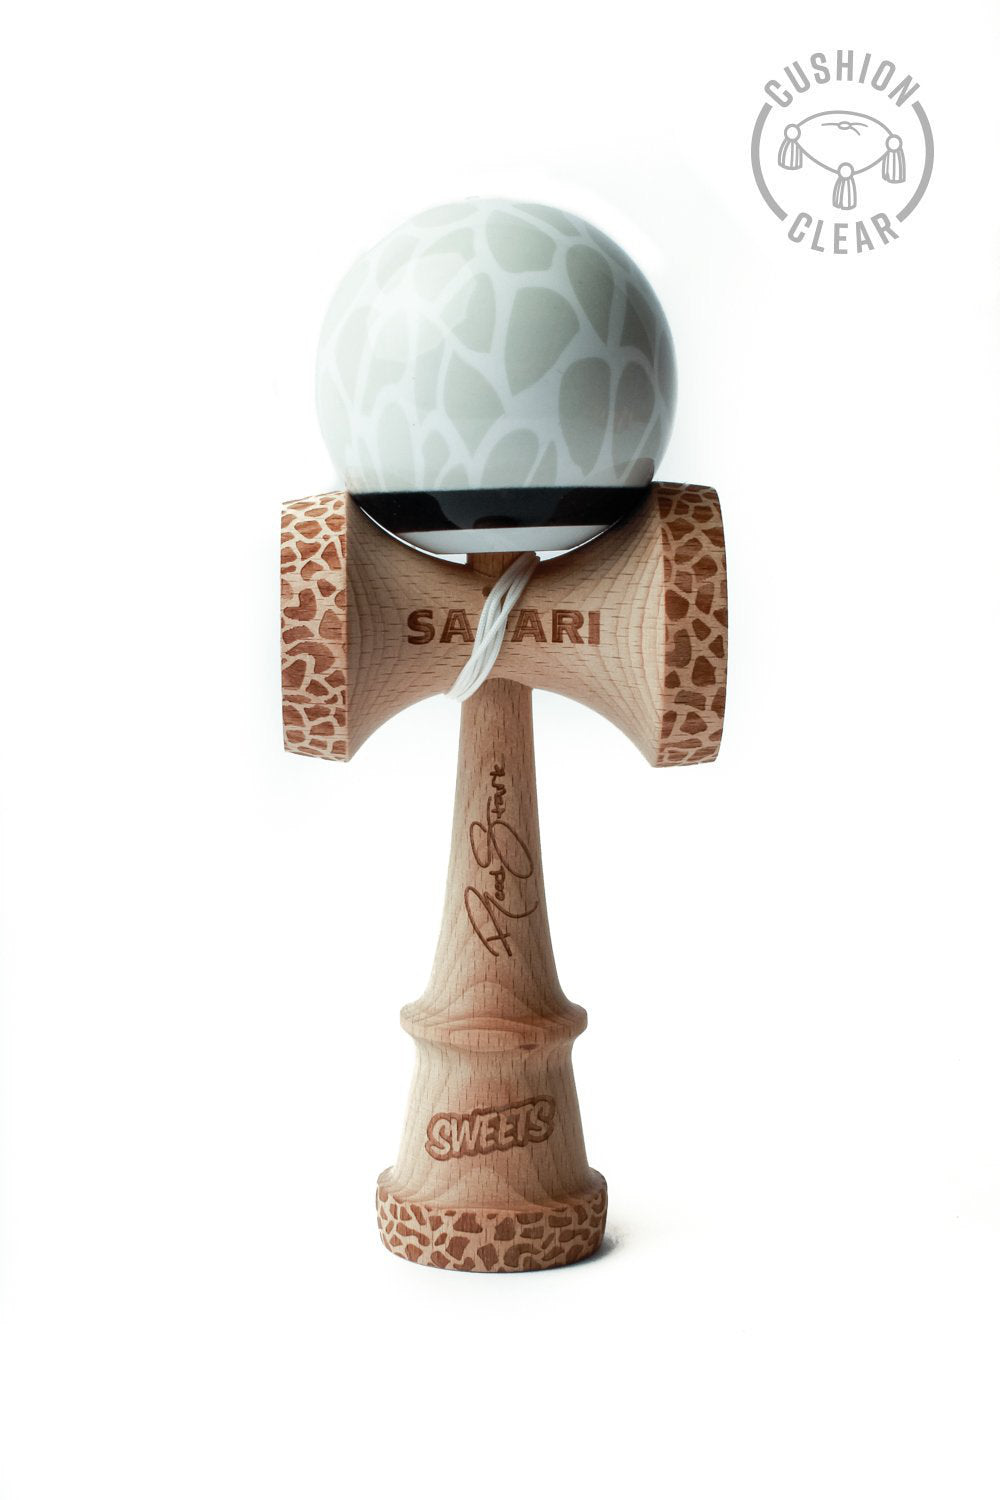 Sweets Reed Stark Signature Cush Kendama